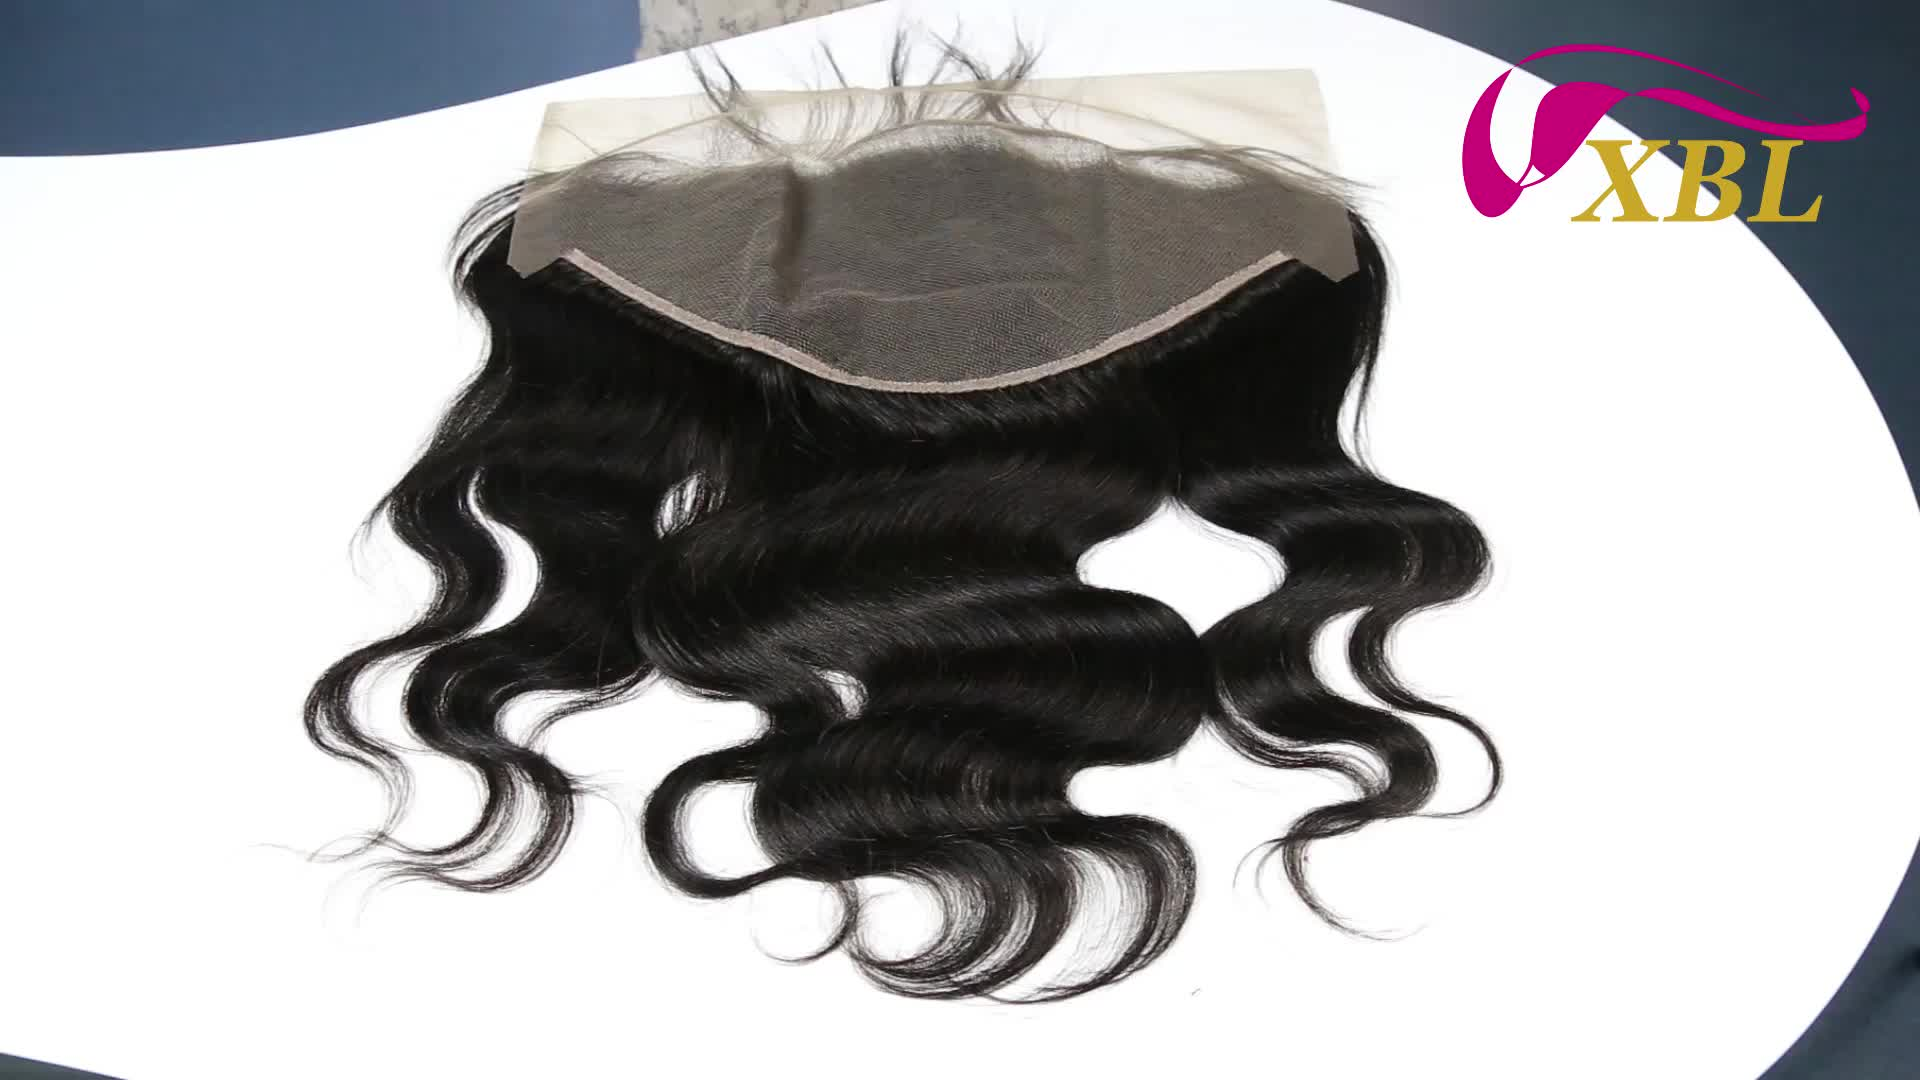 Free Shipping Brazilian Body Wave Swiss Lace Frontal Can be Parted Anywhere Human Hair Lace Frontal 1 Piece